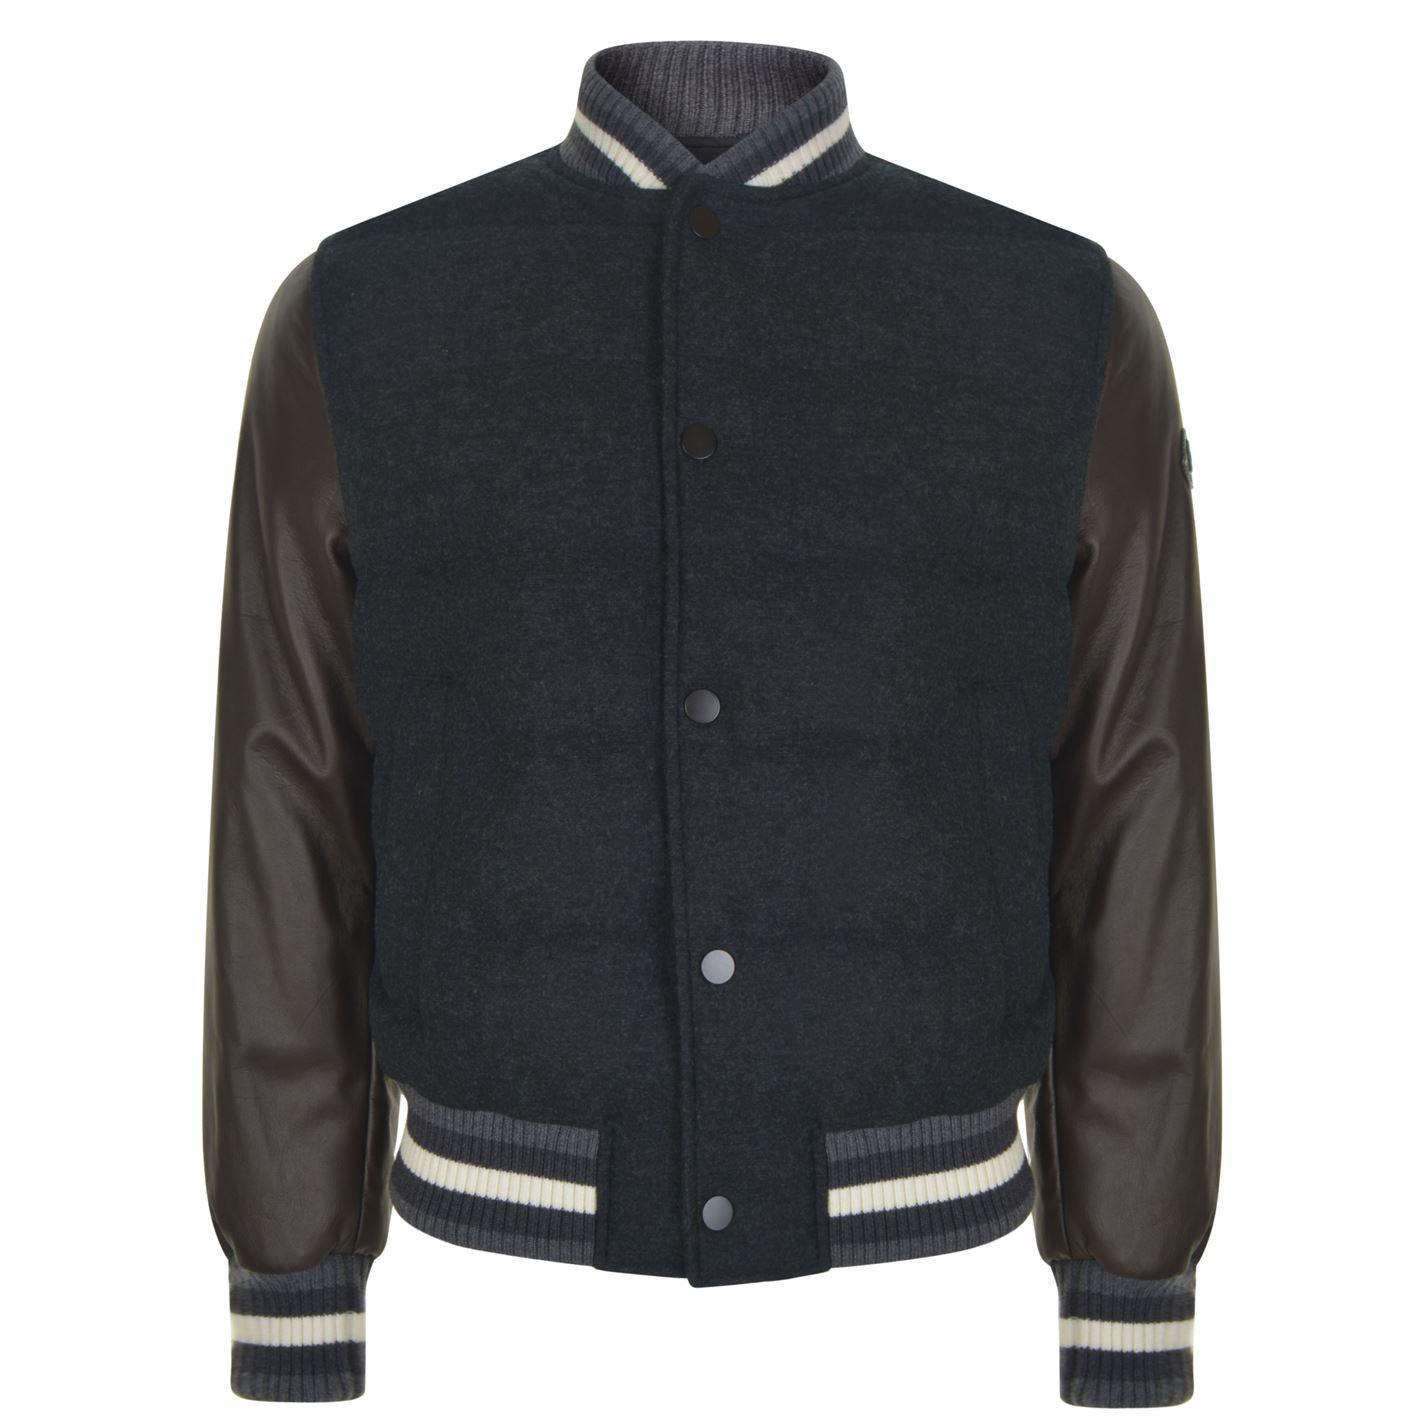 bc44e7515 clearance moncler leather coat 1eaf7 5c4fd